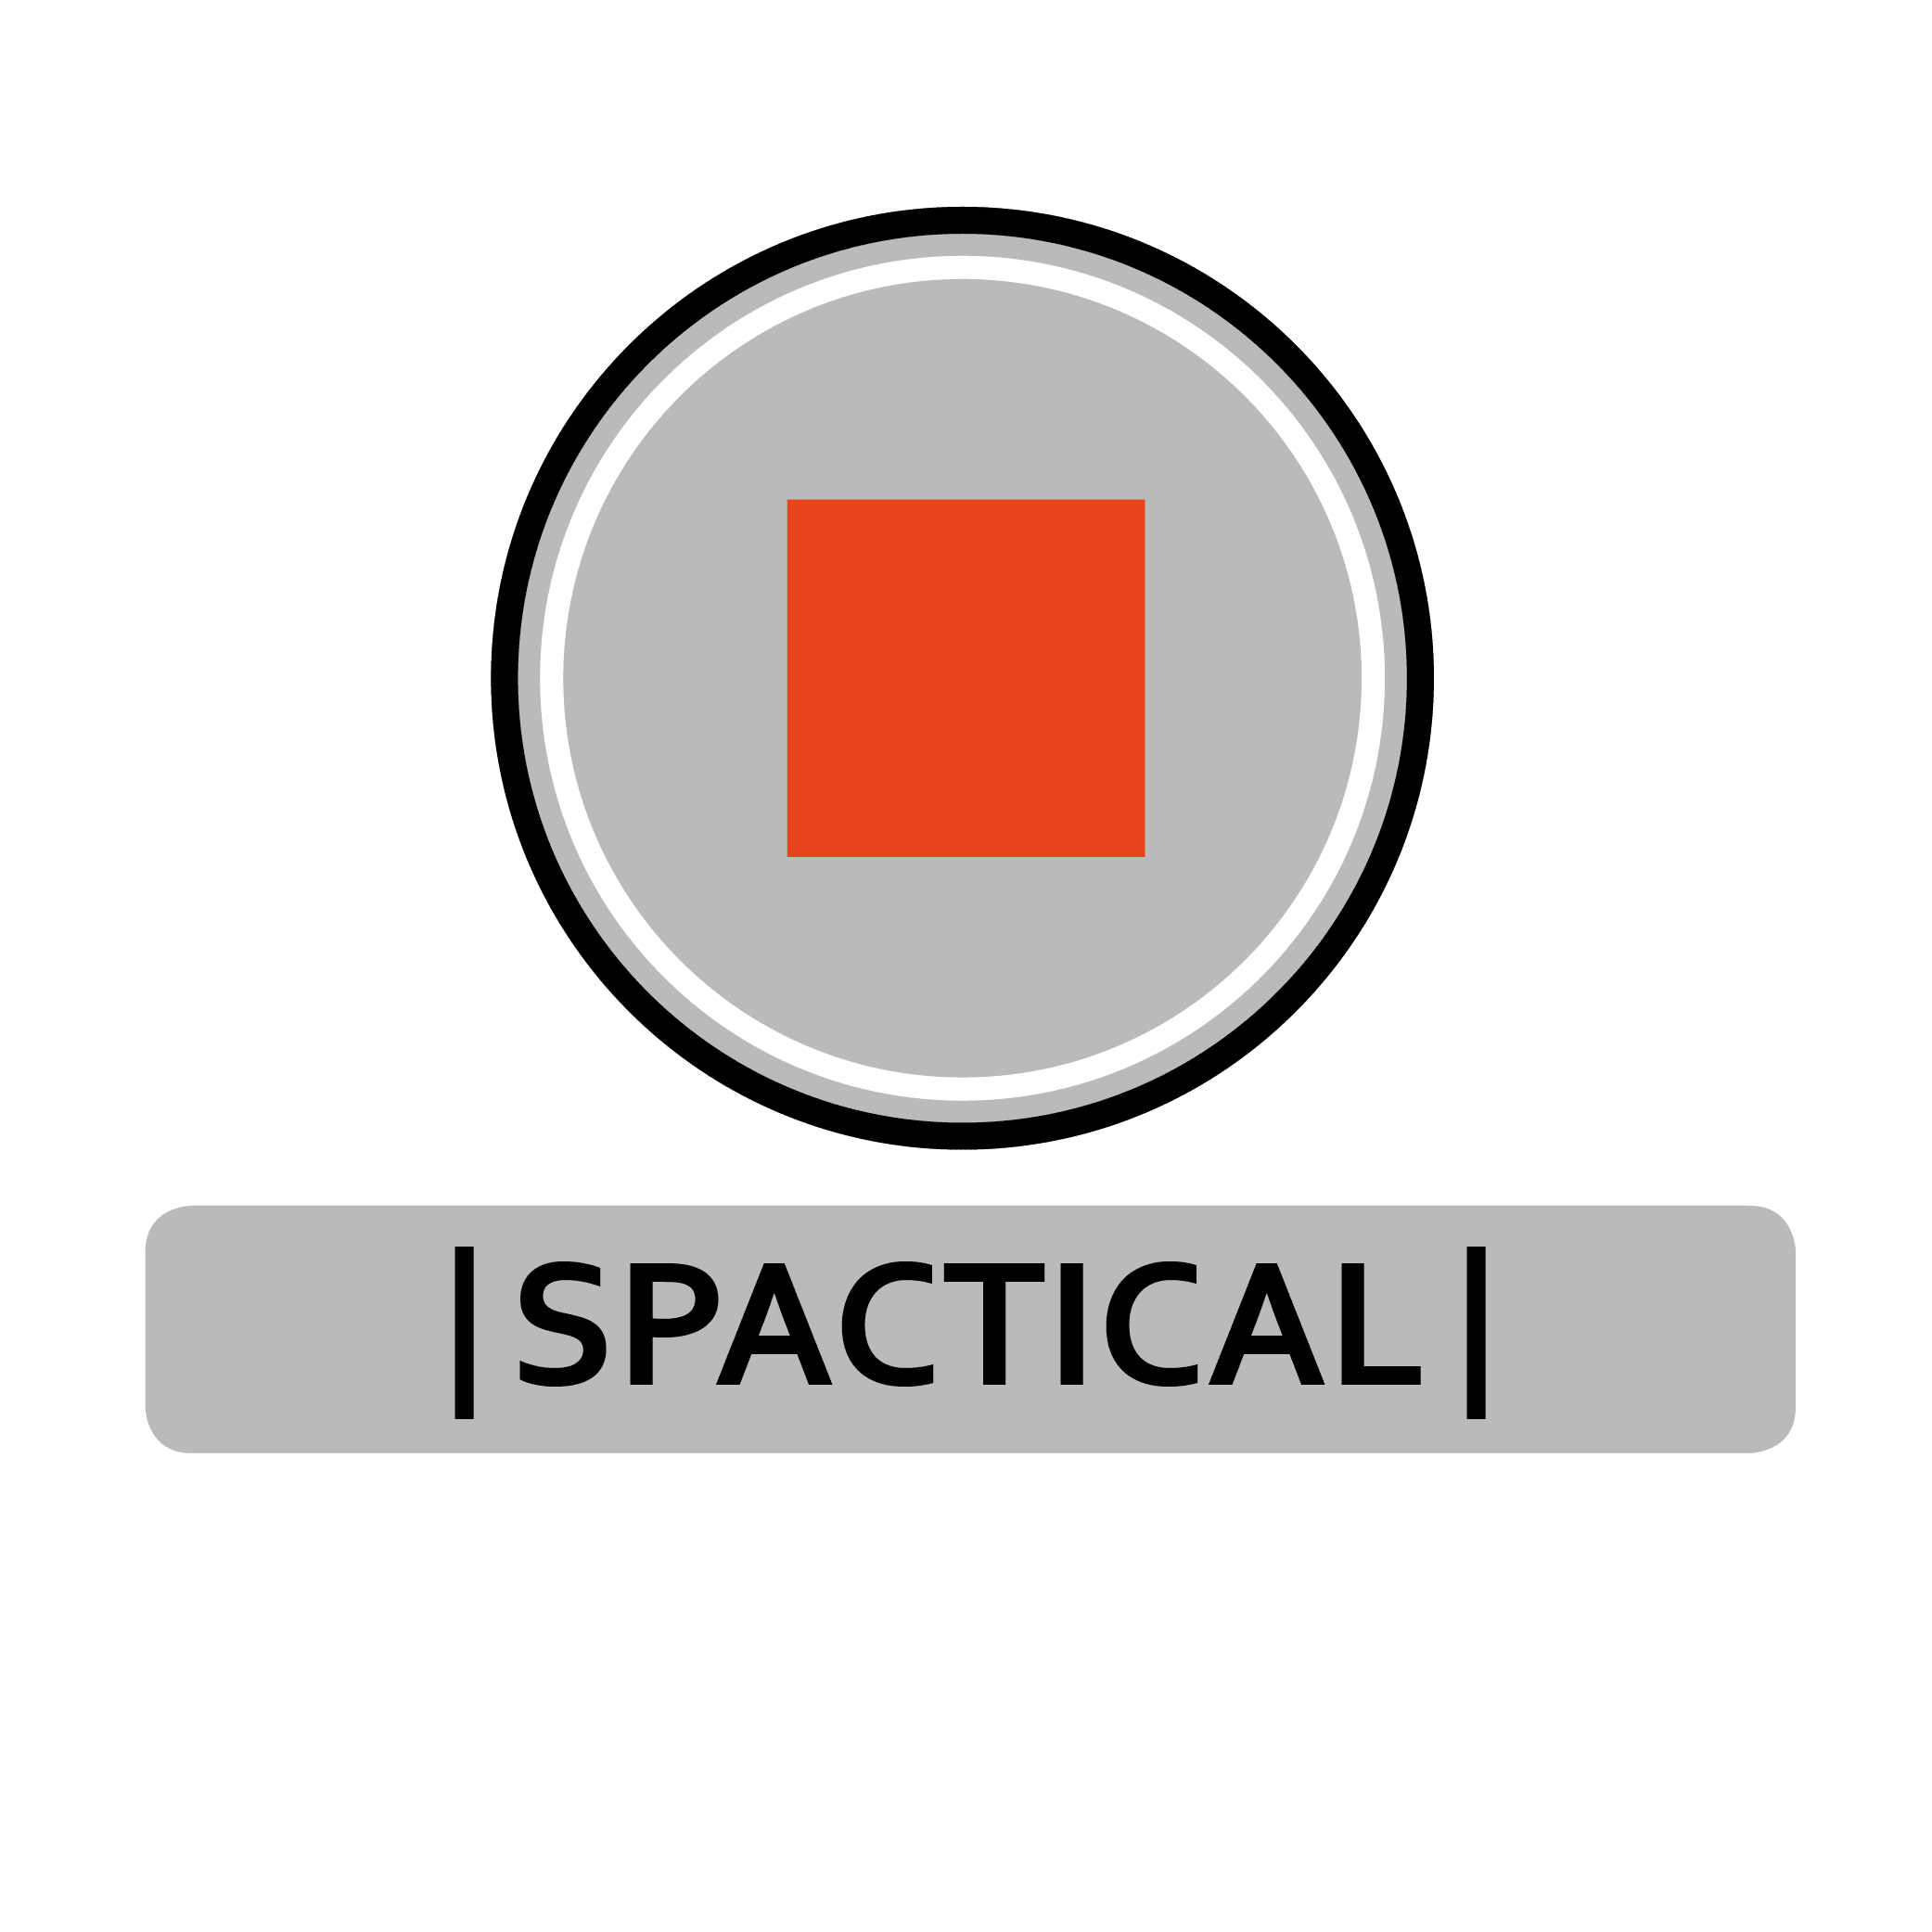 Spactical Design Aachen